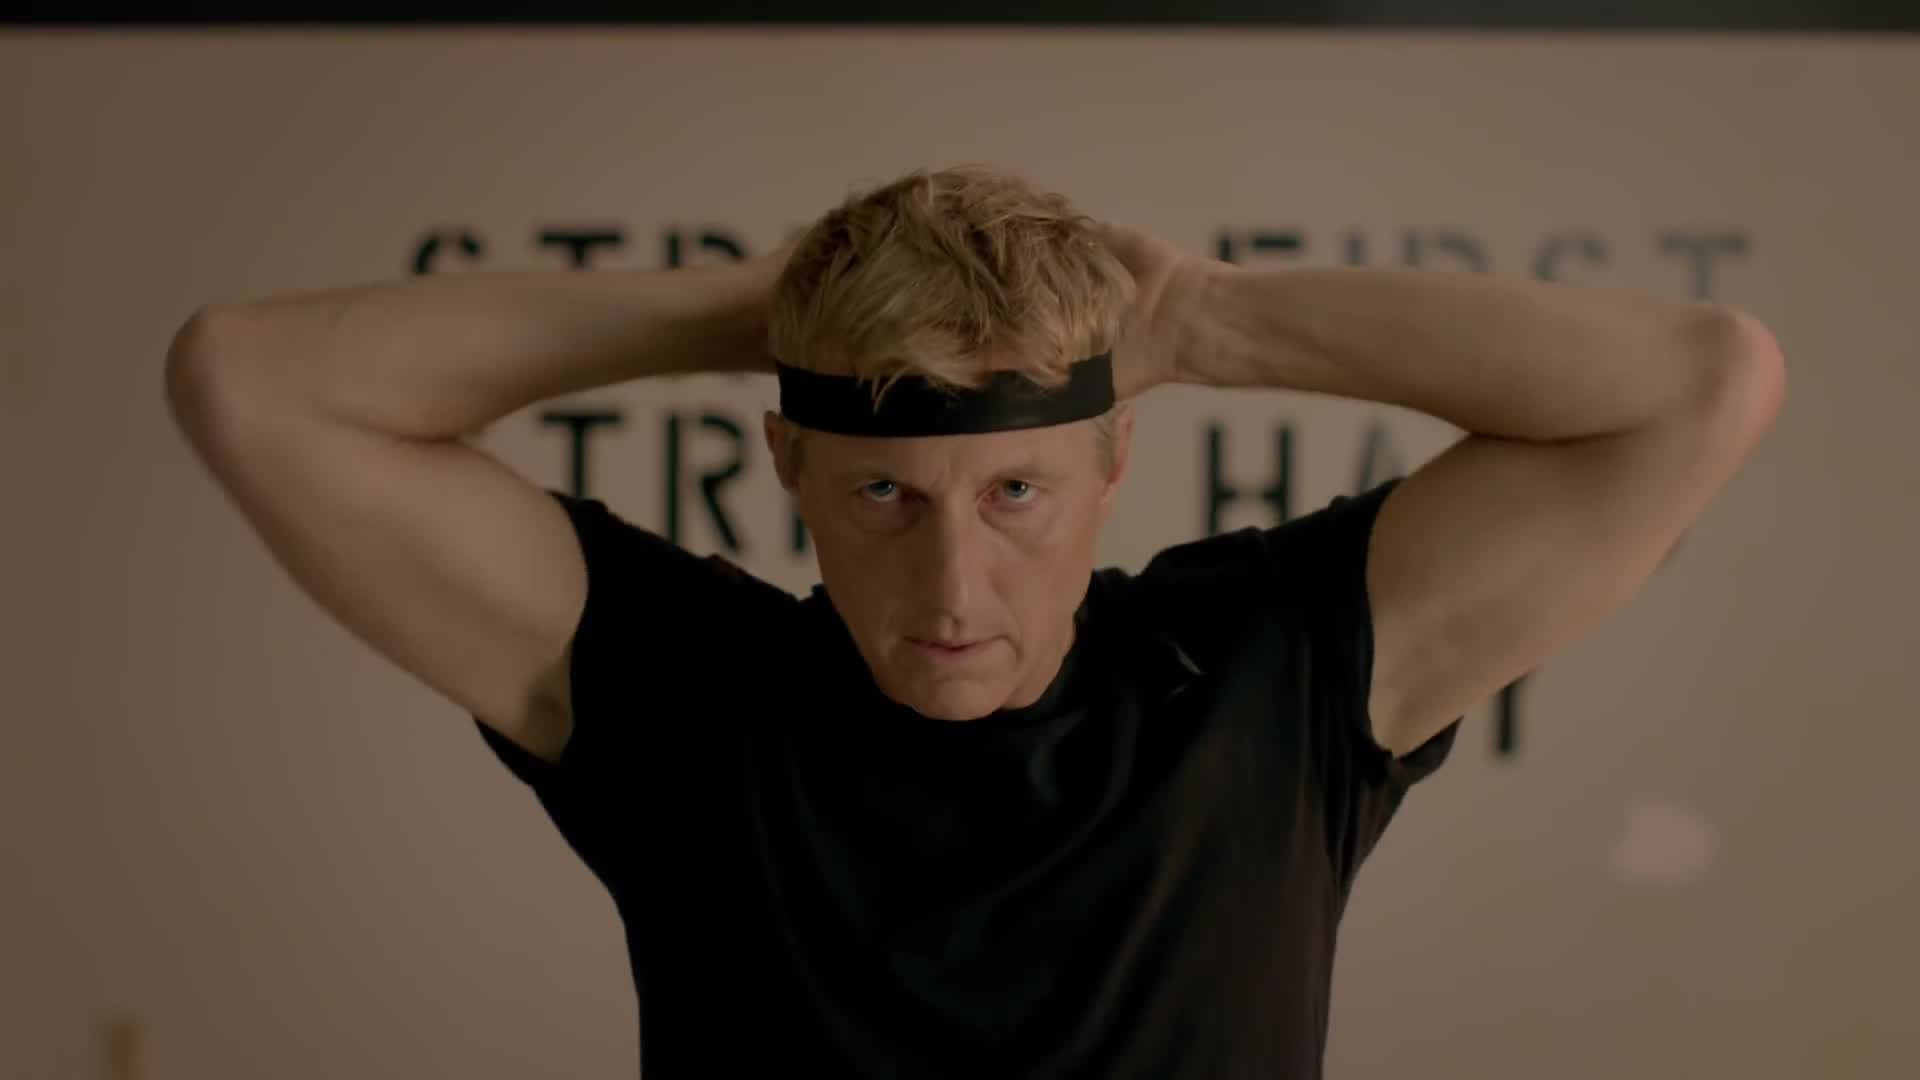 Cobra Kai film completo in italiano download gratuito hd 720p